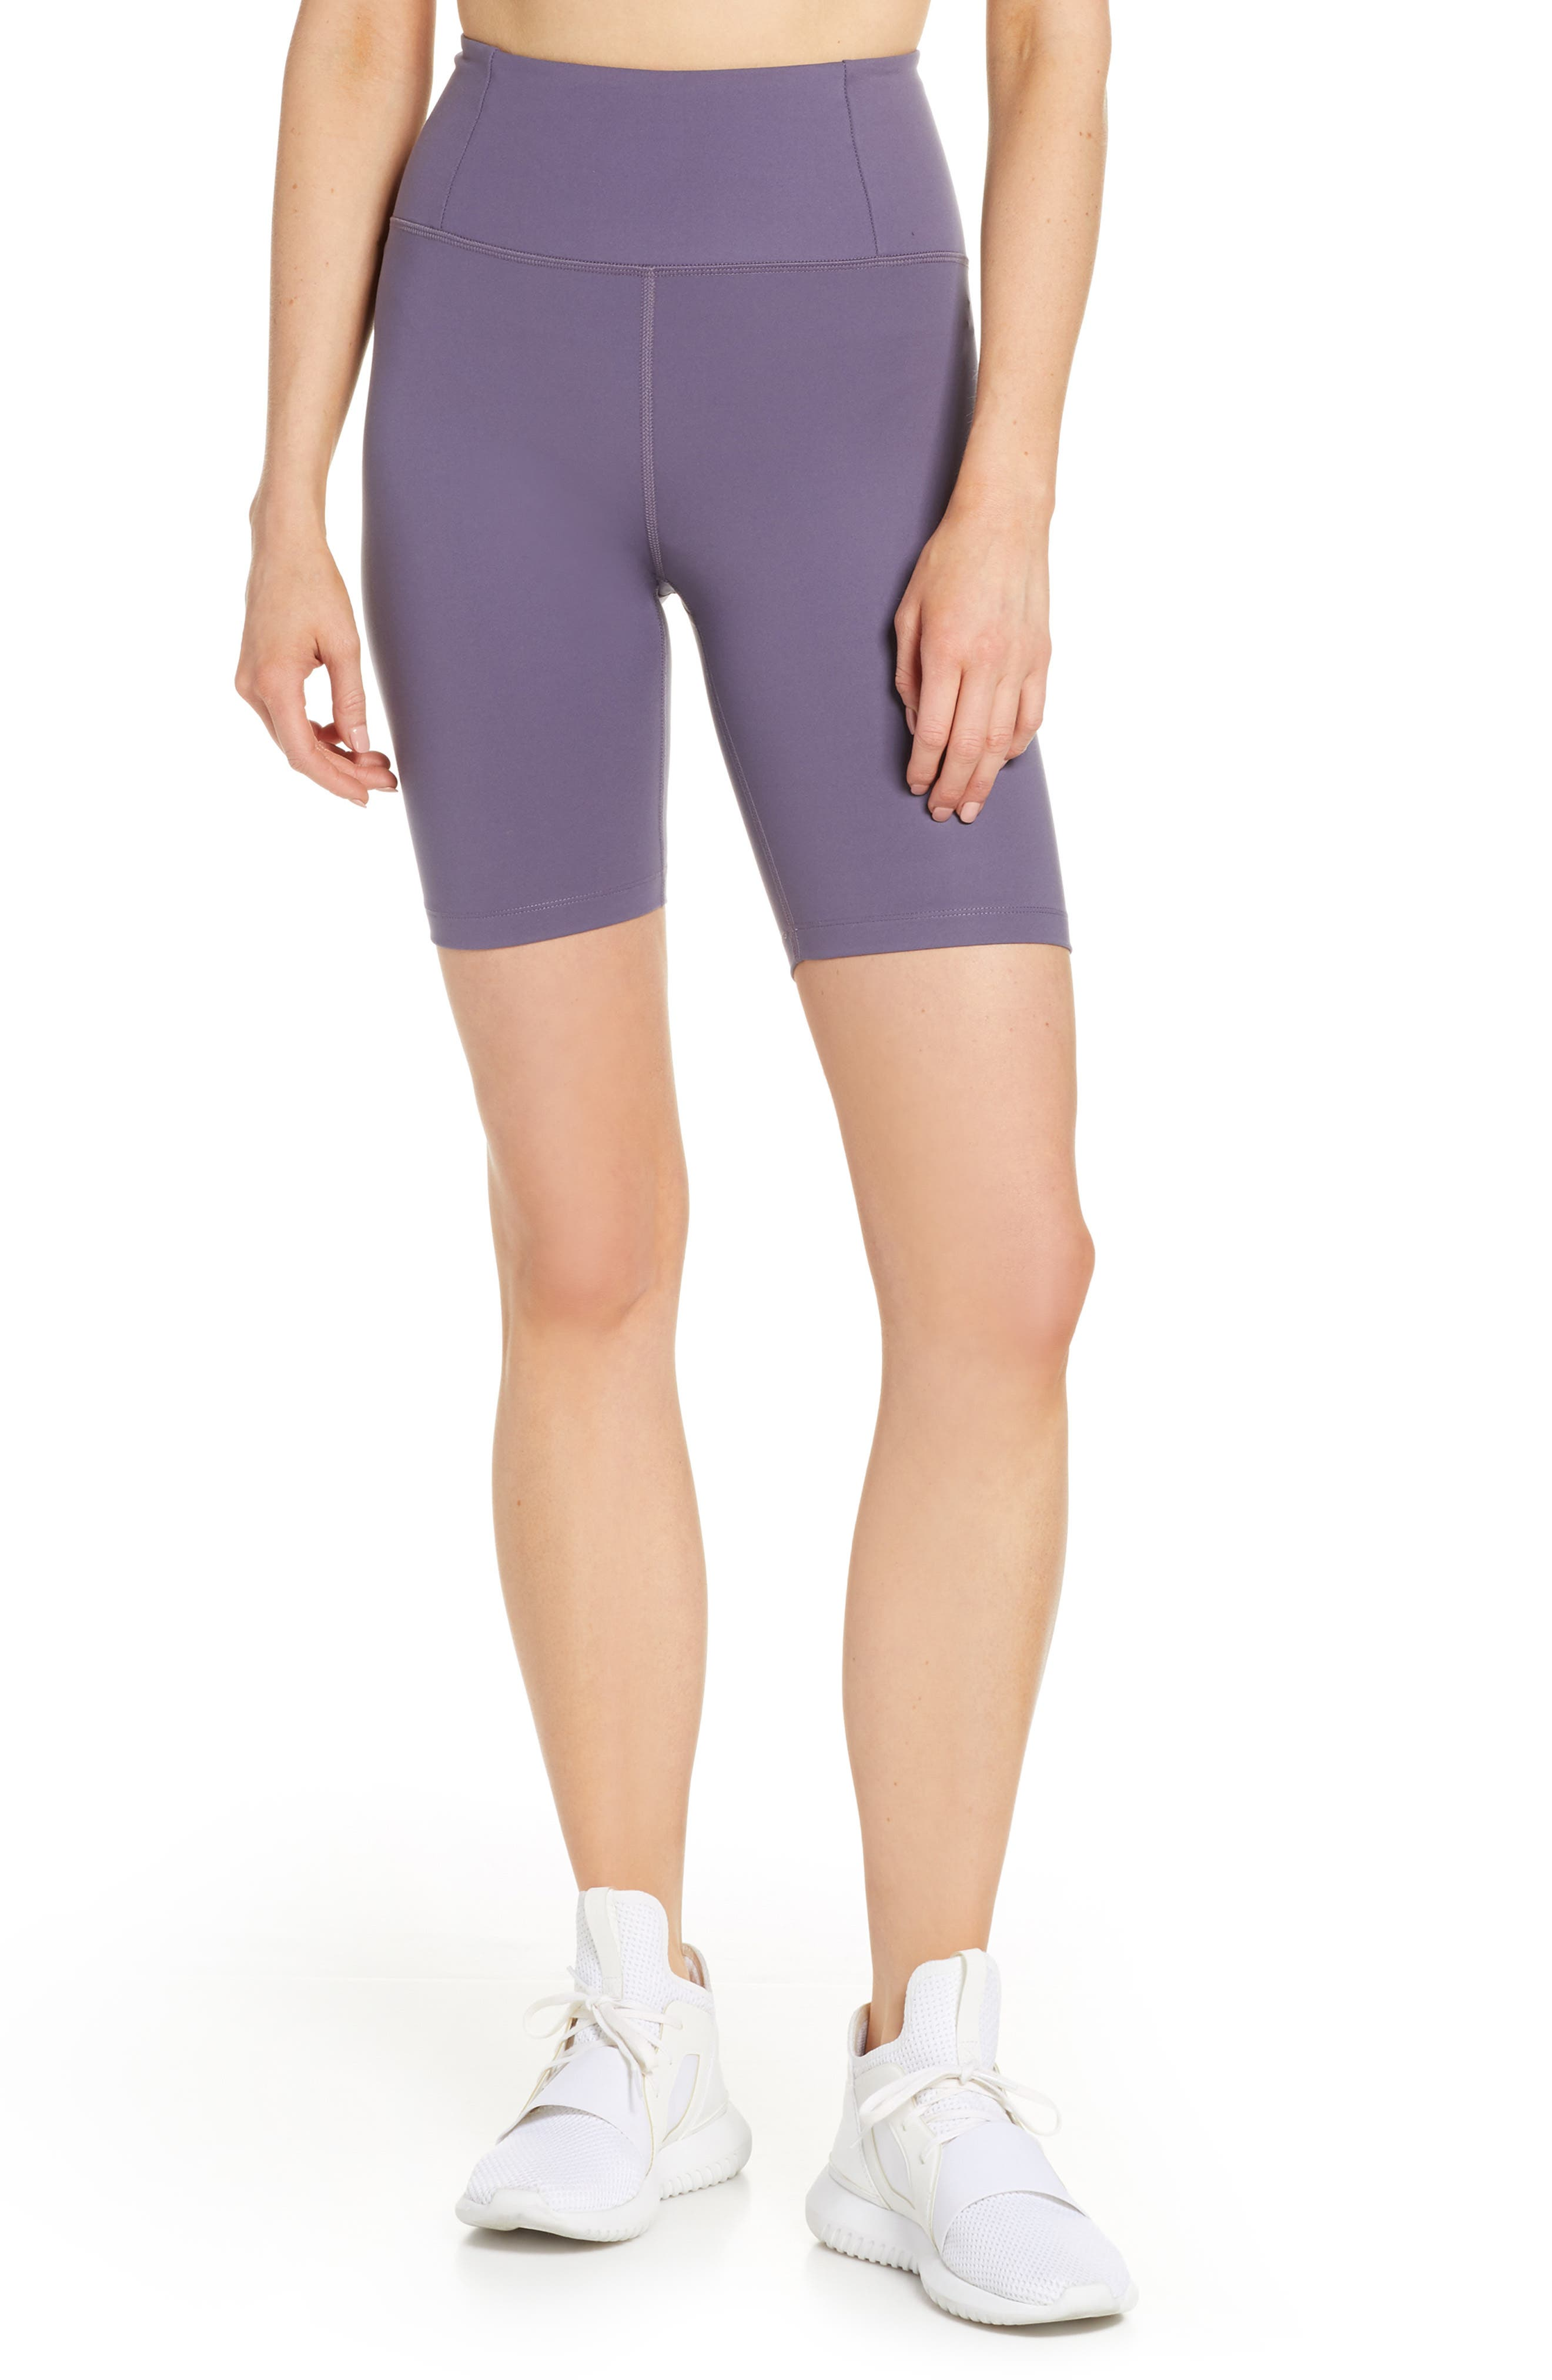 Girlfriend Collective High Waist Bike Shorts, Purple